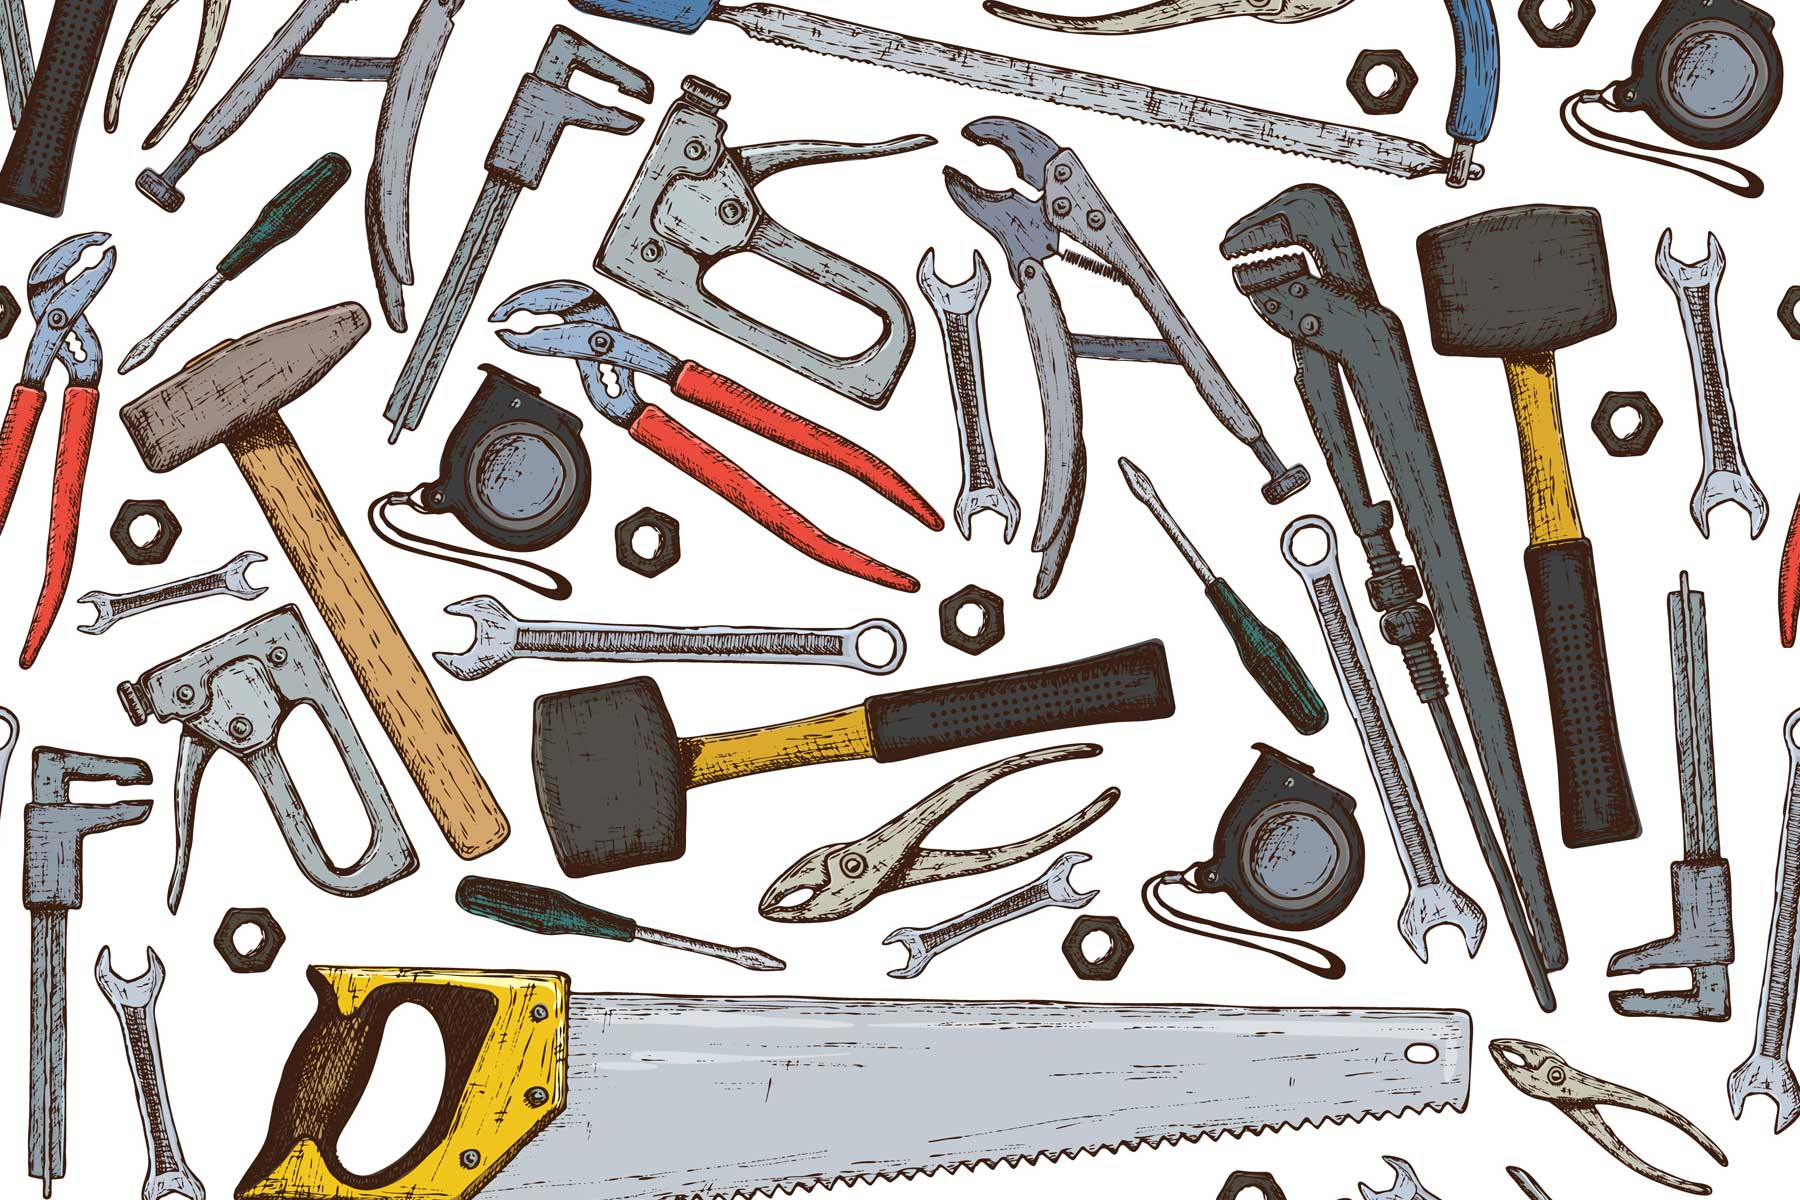 Illustration of a variety of household tools